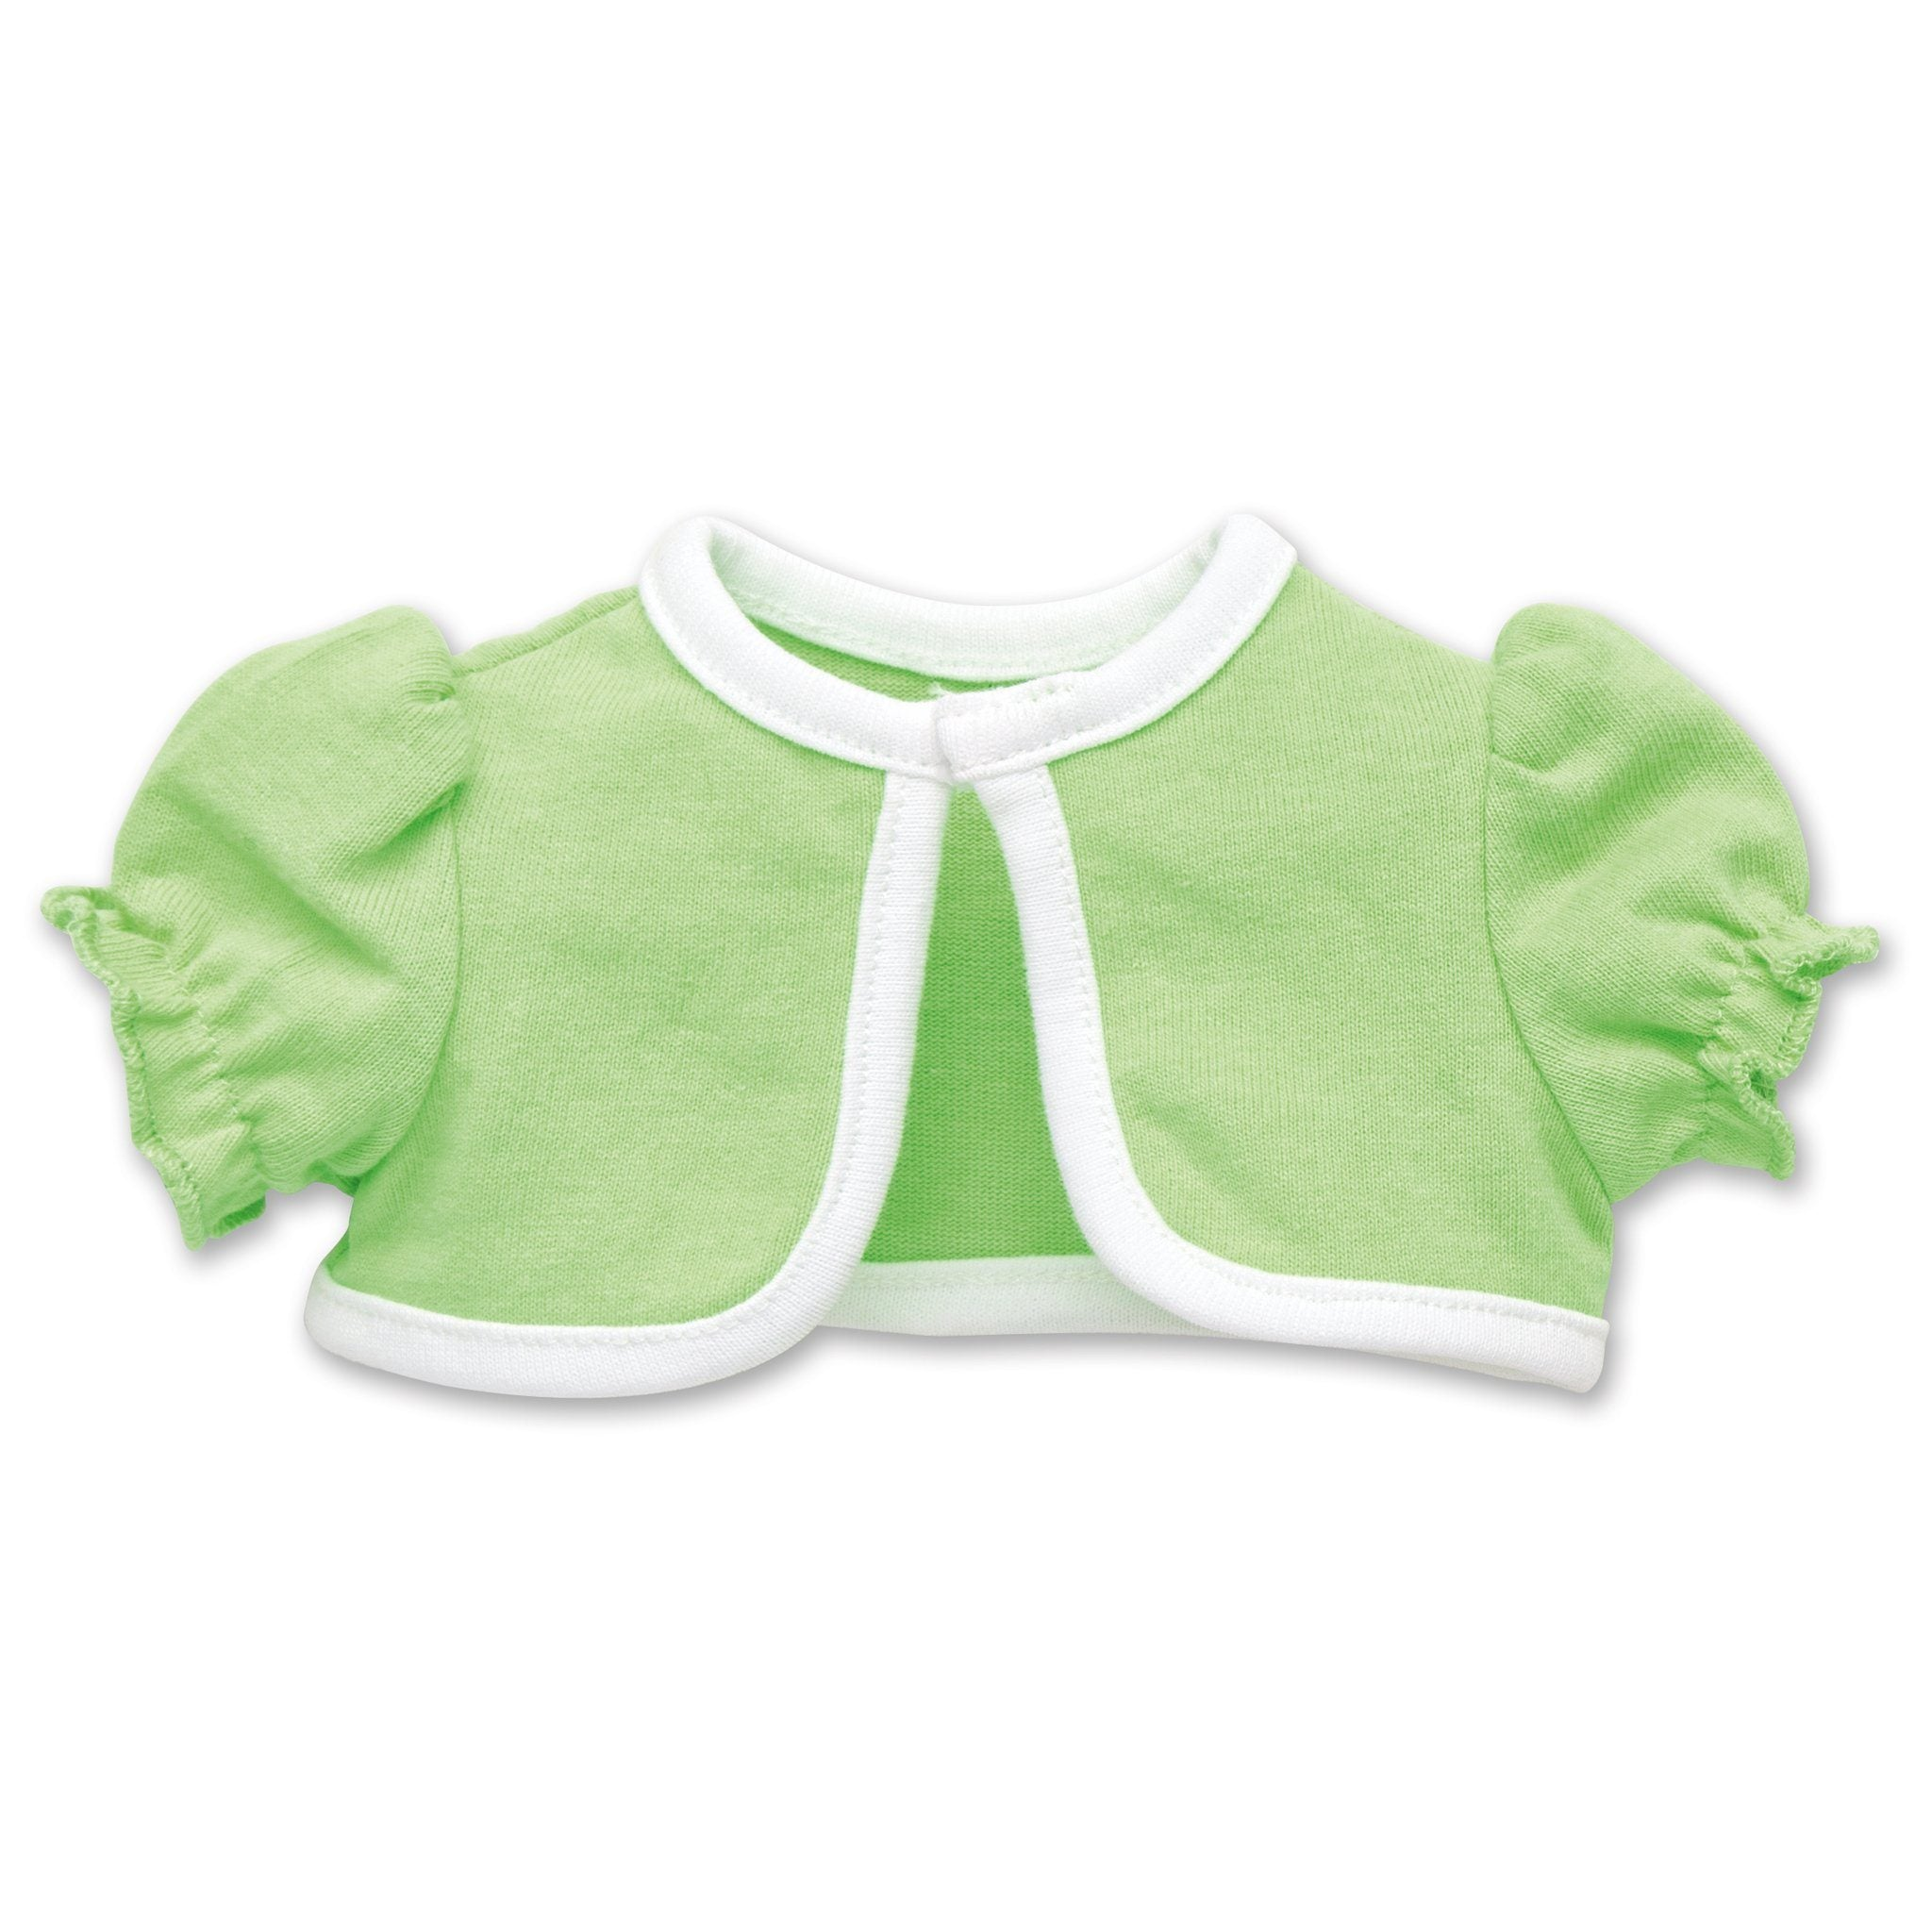 Tulip Royale light green bolero jacket with white trim fits all 18 inch dolls.